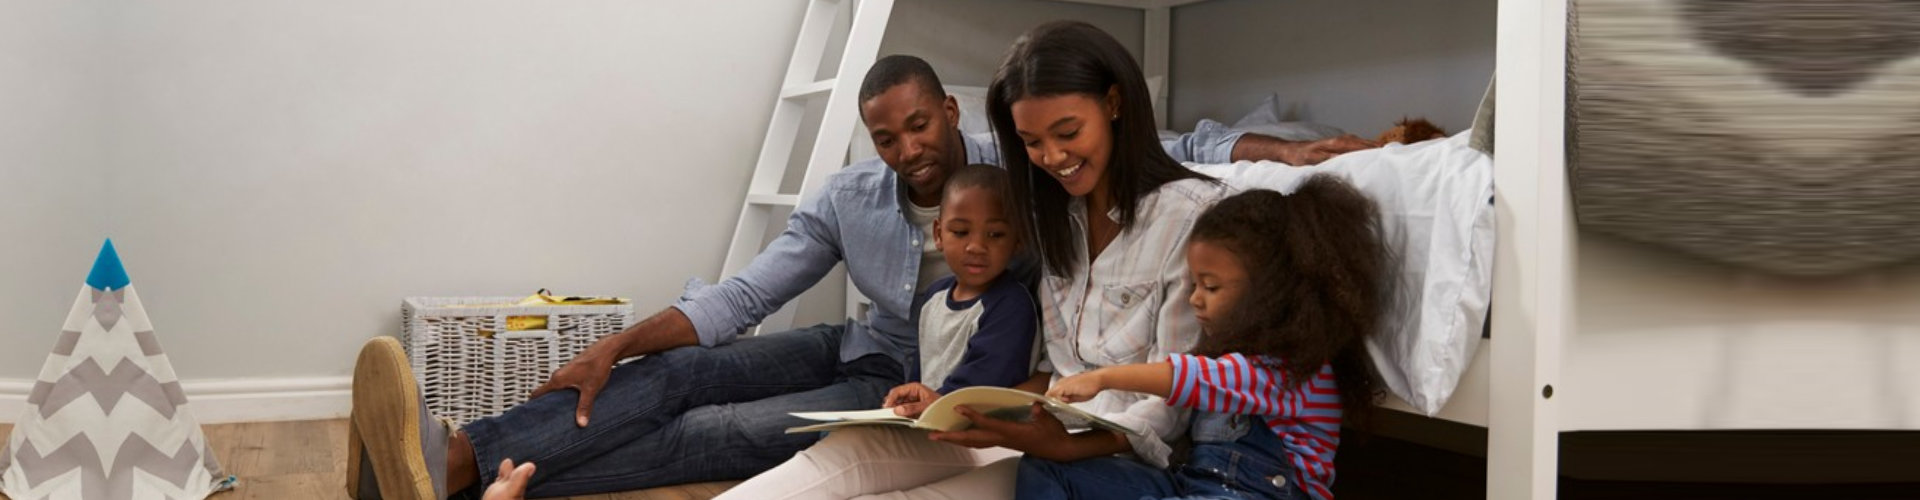 parents reading story to children in the bedroom